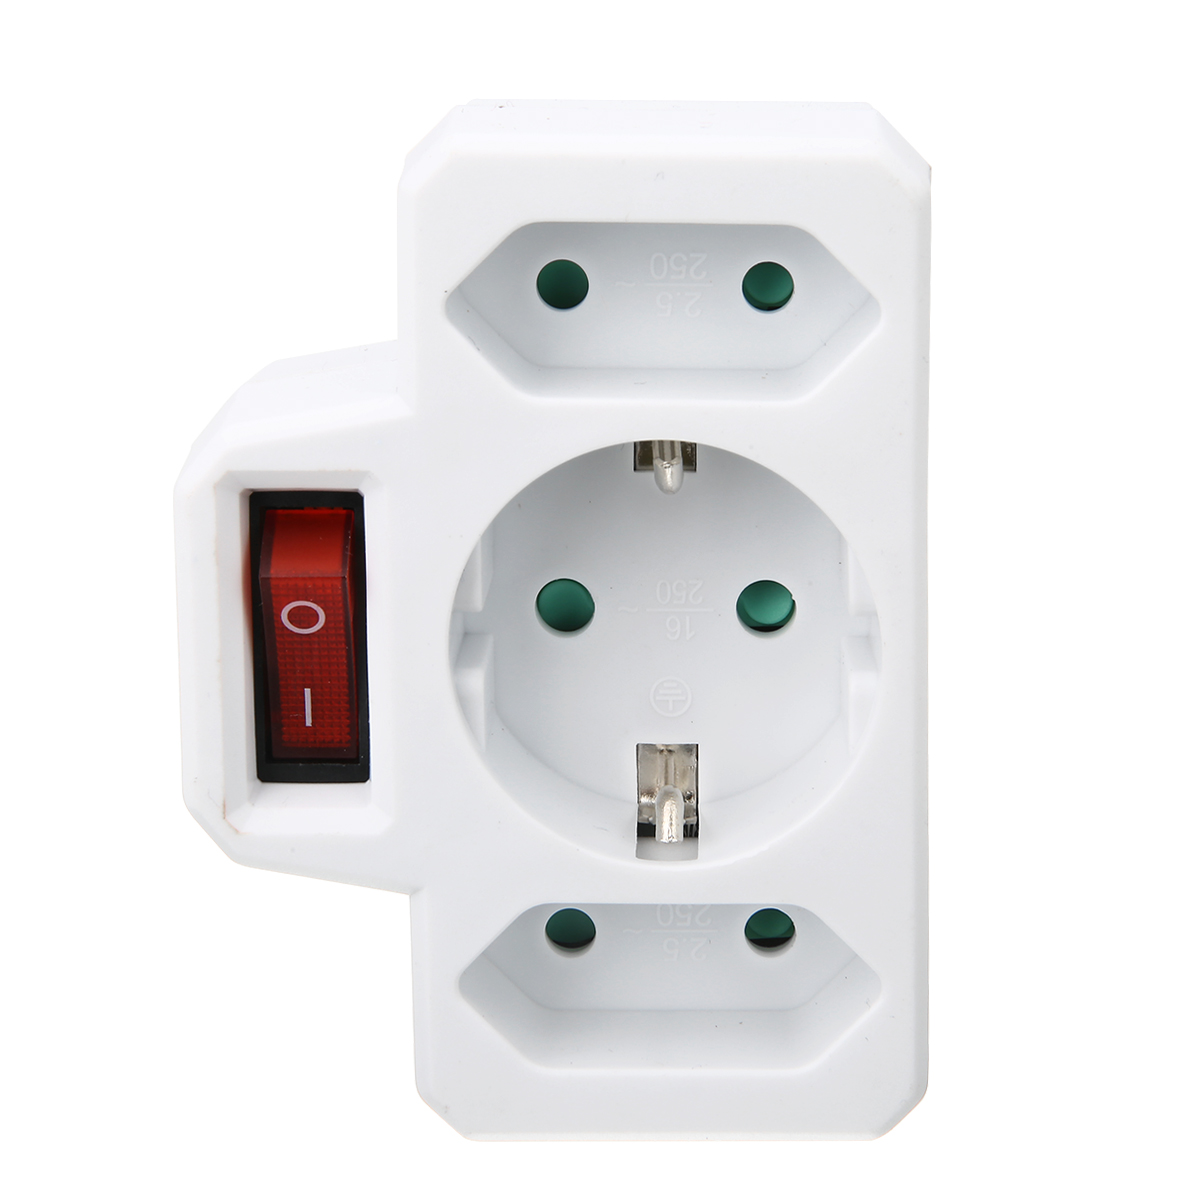 1pc 250V 16A 2 5A EU Plug Multiple Outlet Extension Socket Home Electronics Charging Electric Adapter With Switch in Electrical Socket Accessories from Home Improvement